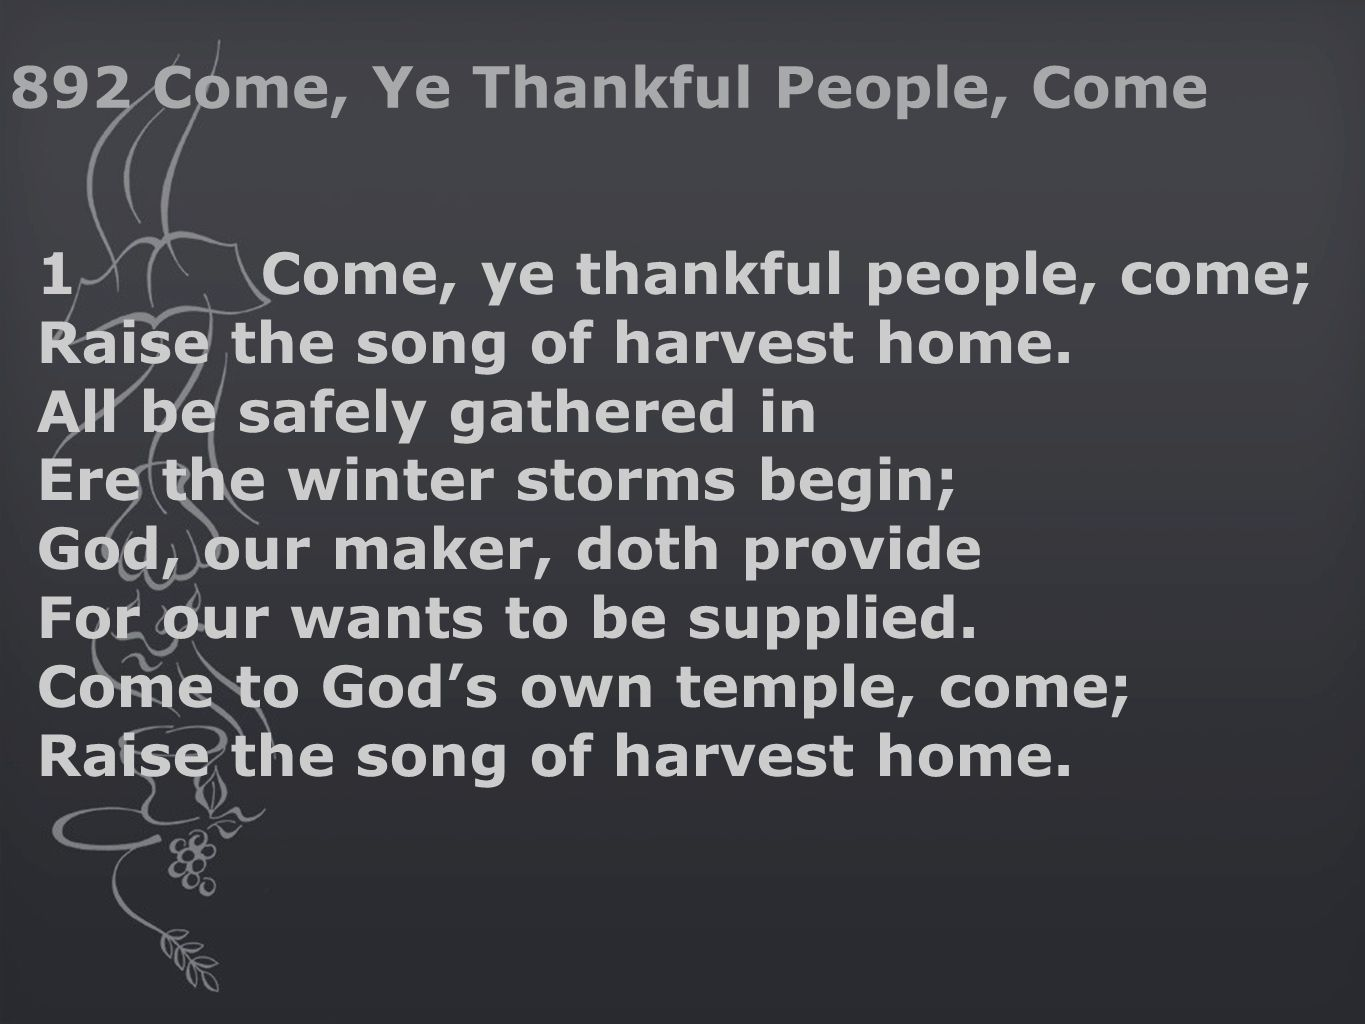 1Come, ye thankful people, come; Raise the song of harvest home.